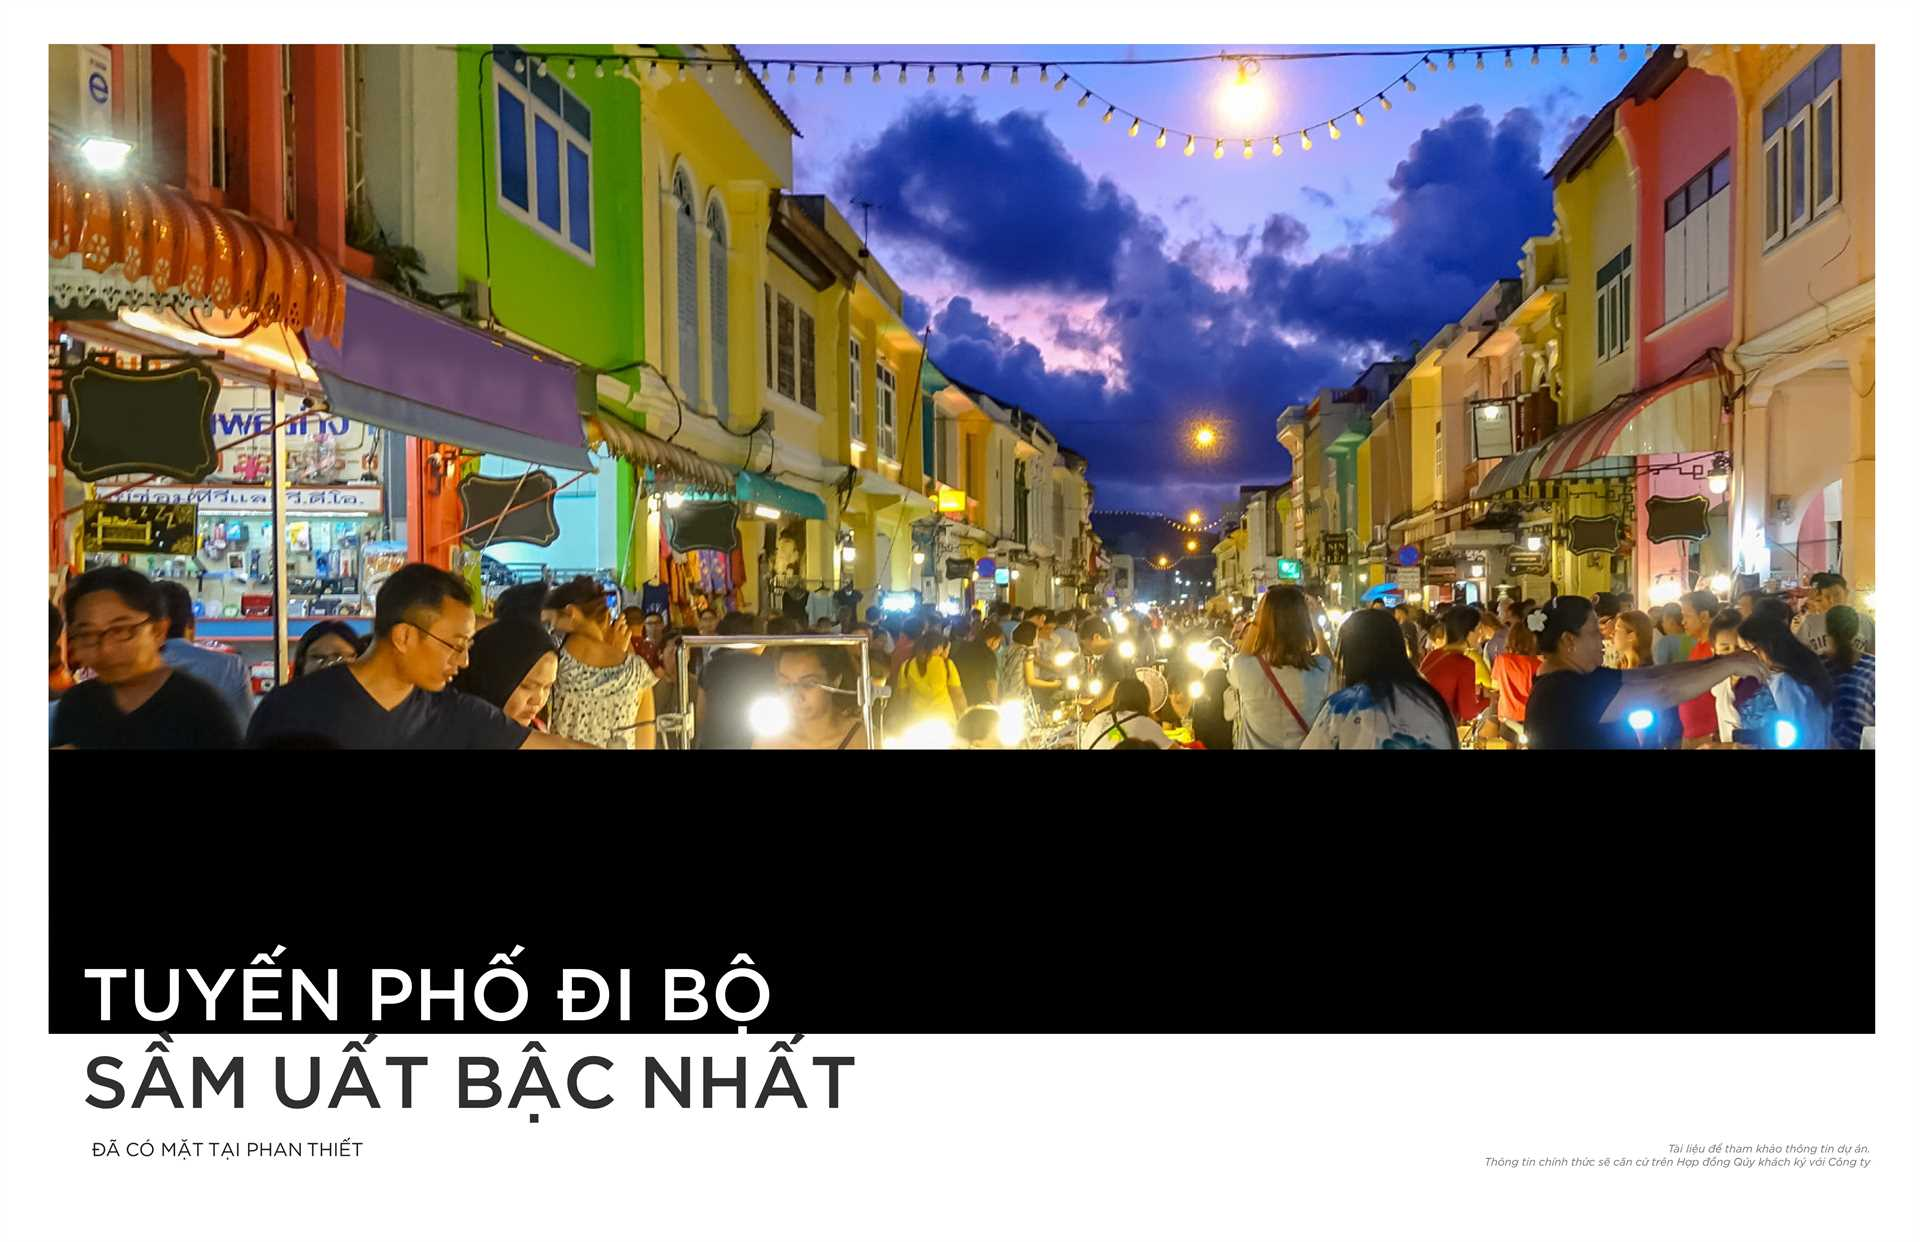 pho-di-bo-shophouse-florida-novaworld-phan-thiet-sam-uat